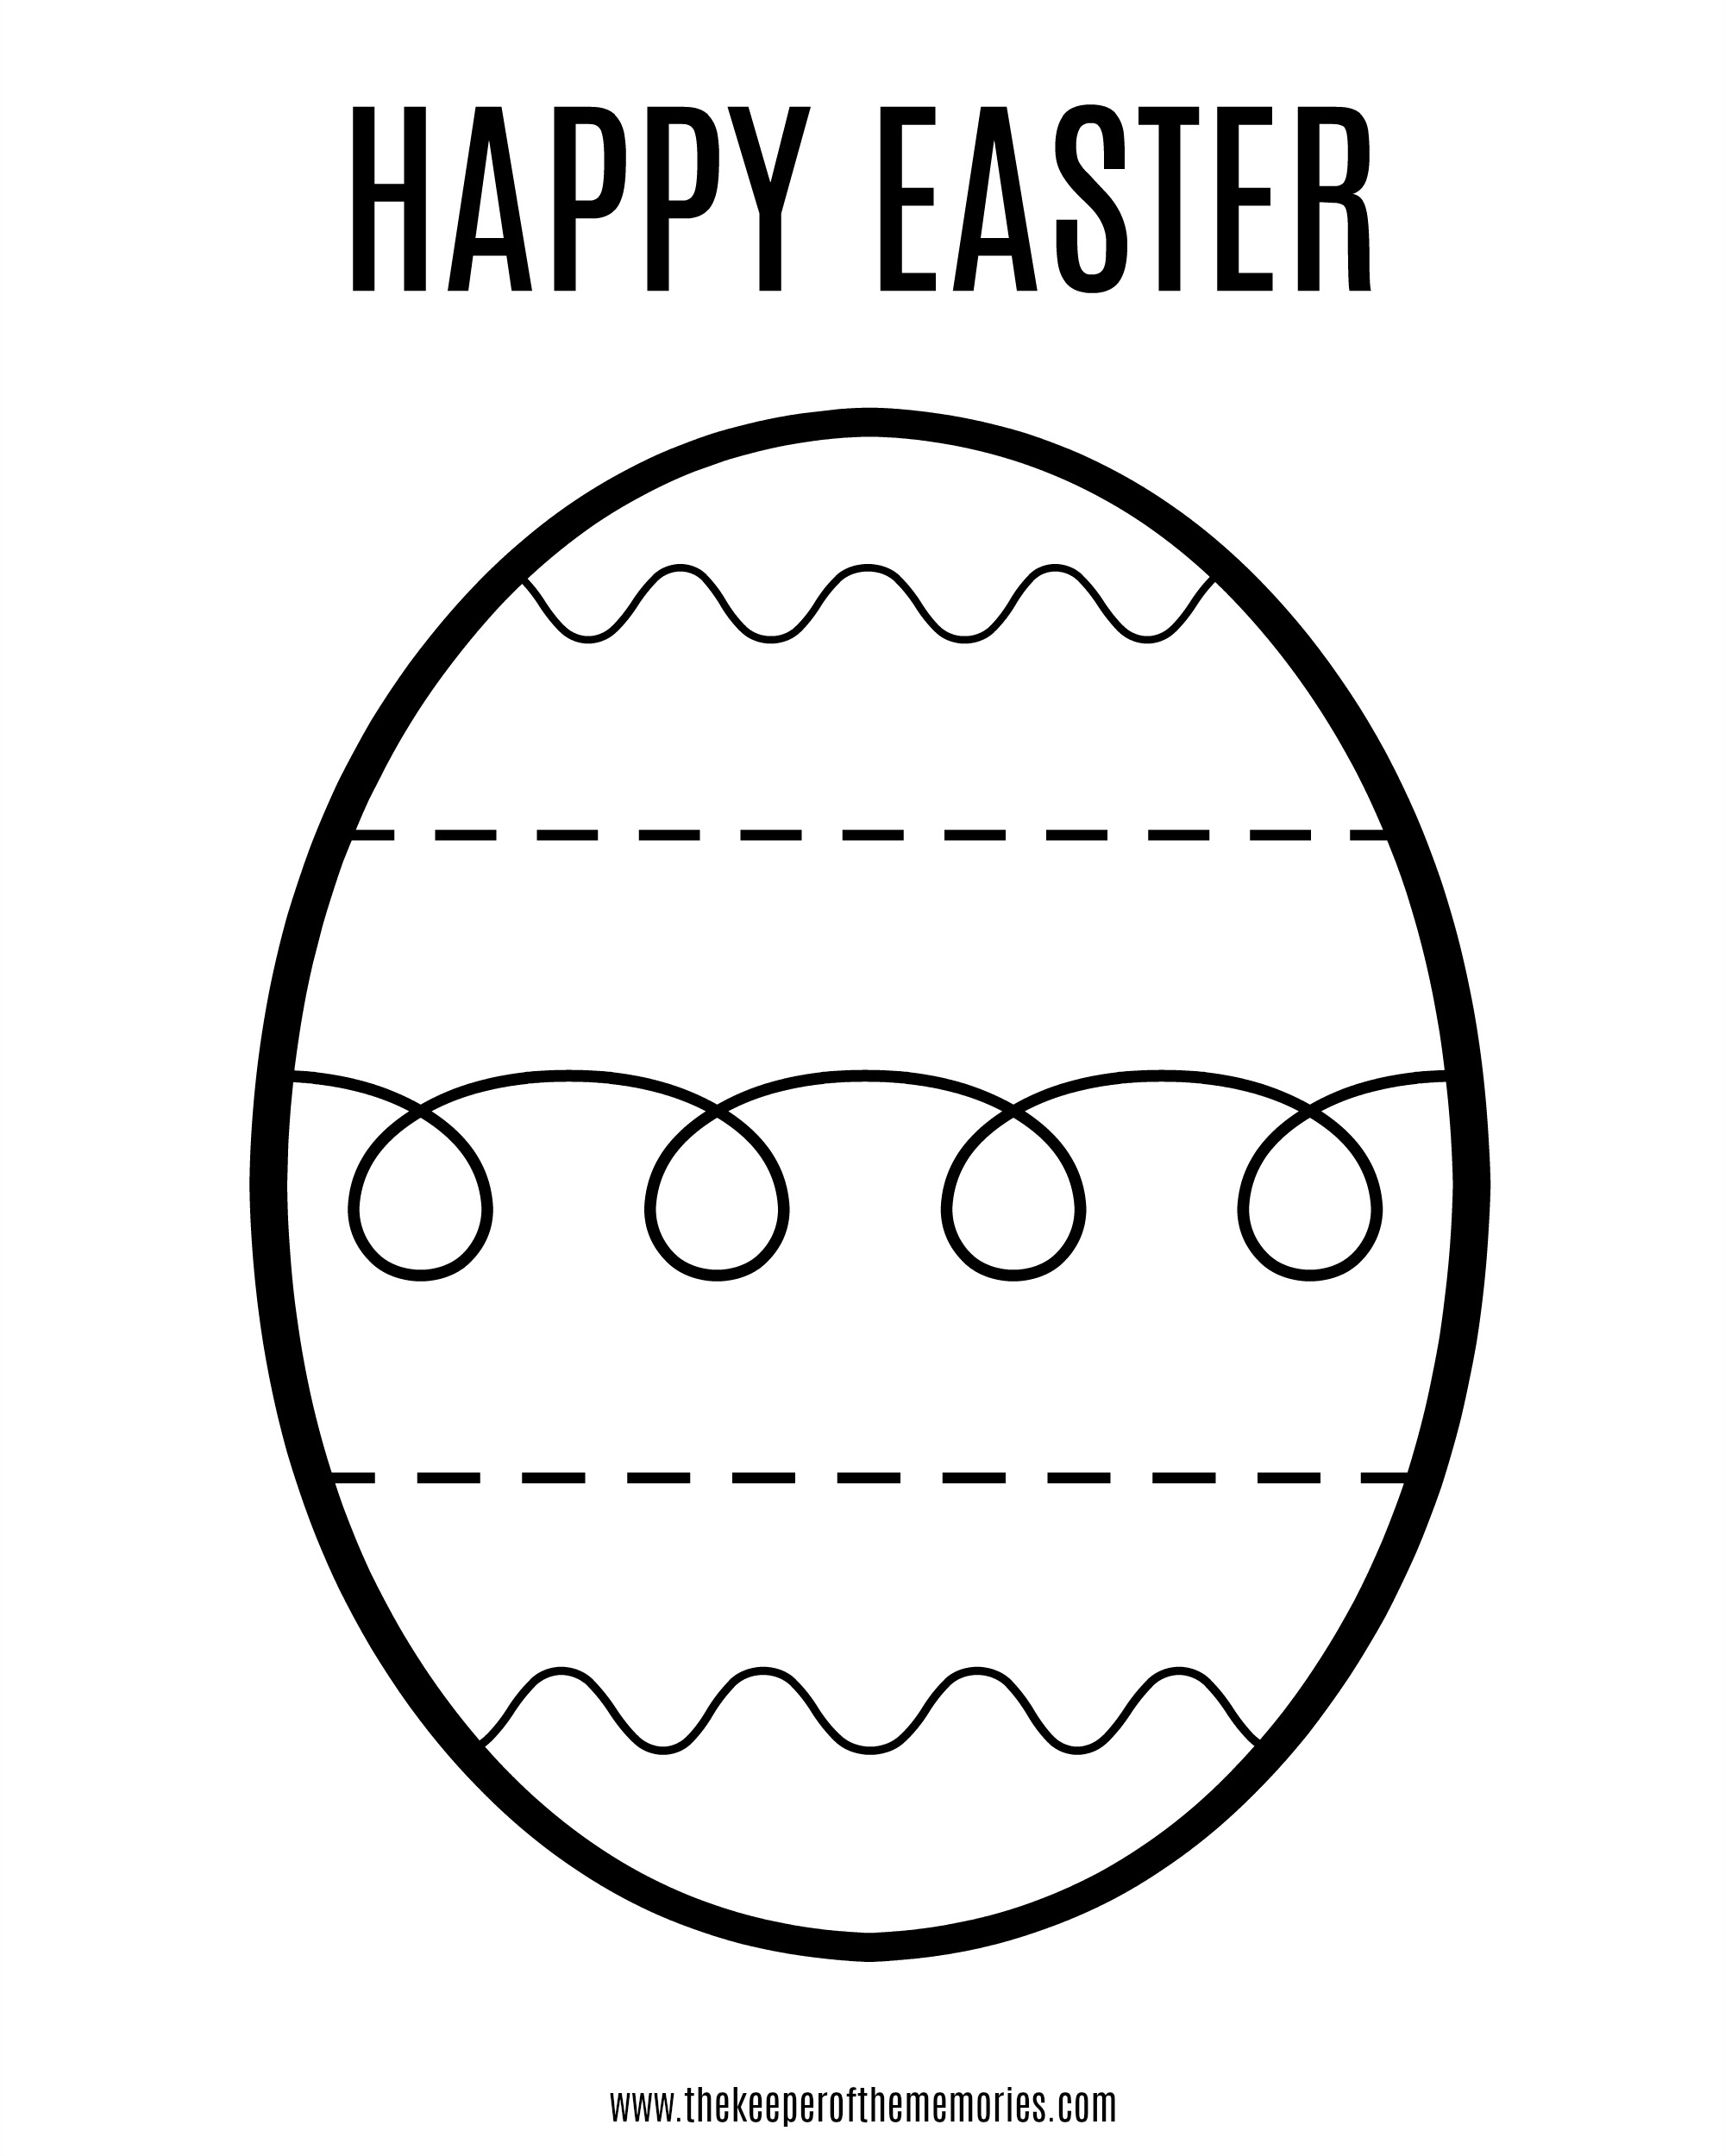 Free Printable Easter Coloring Sheet For Little Kids - The Keeper Of - Free Printable Easter Pages